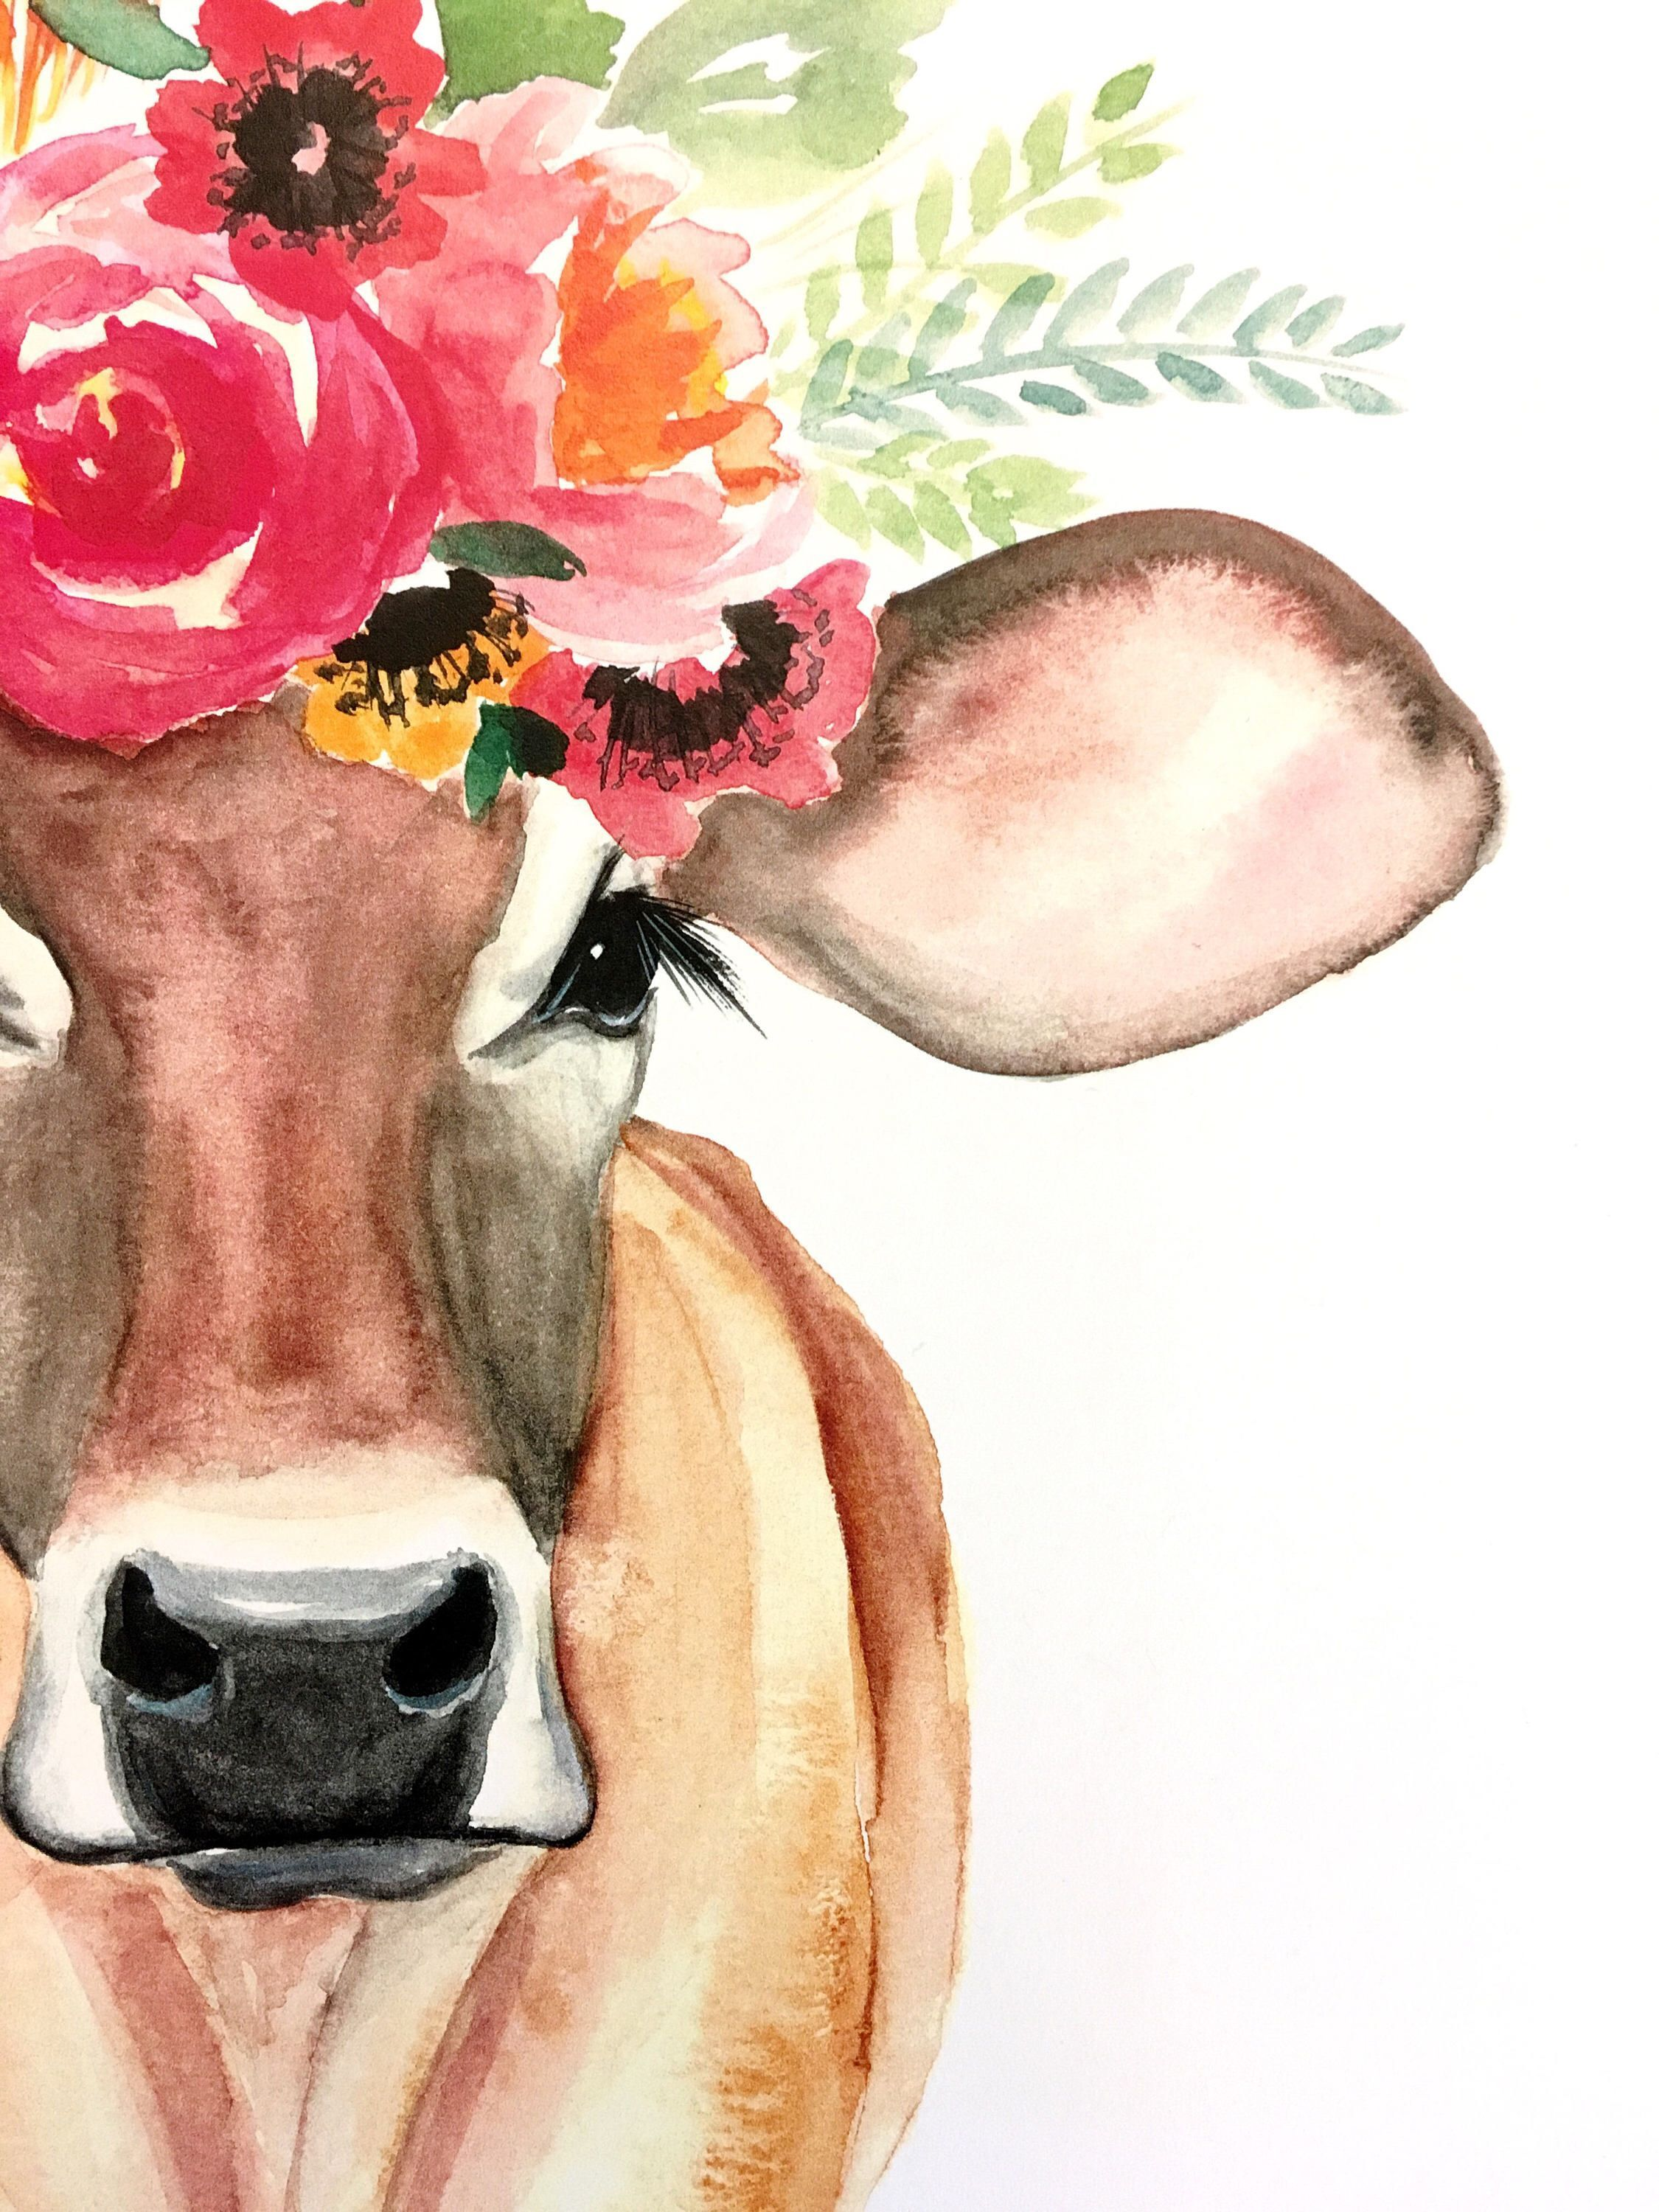 Watercolor Cow With Flower Crown Moo Art And Photography